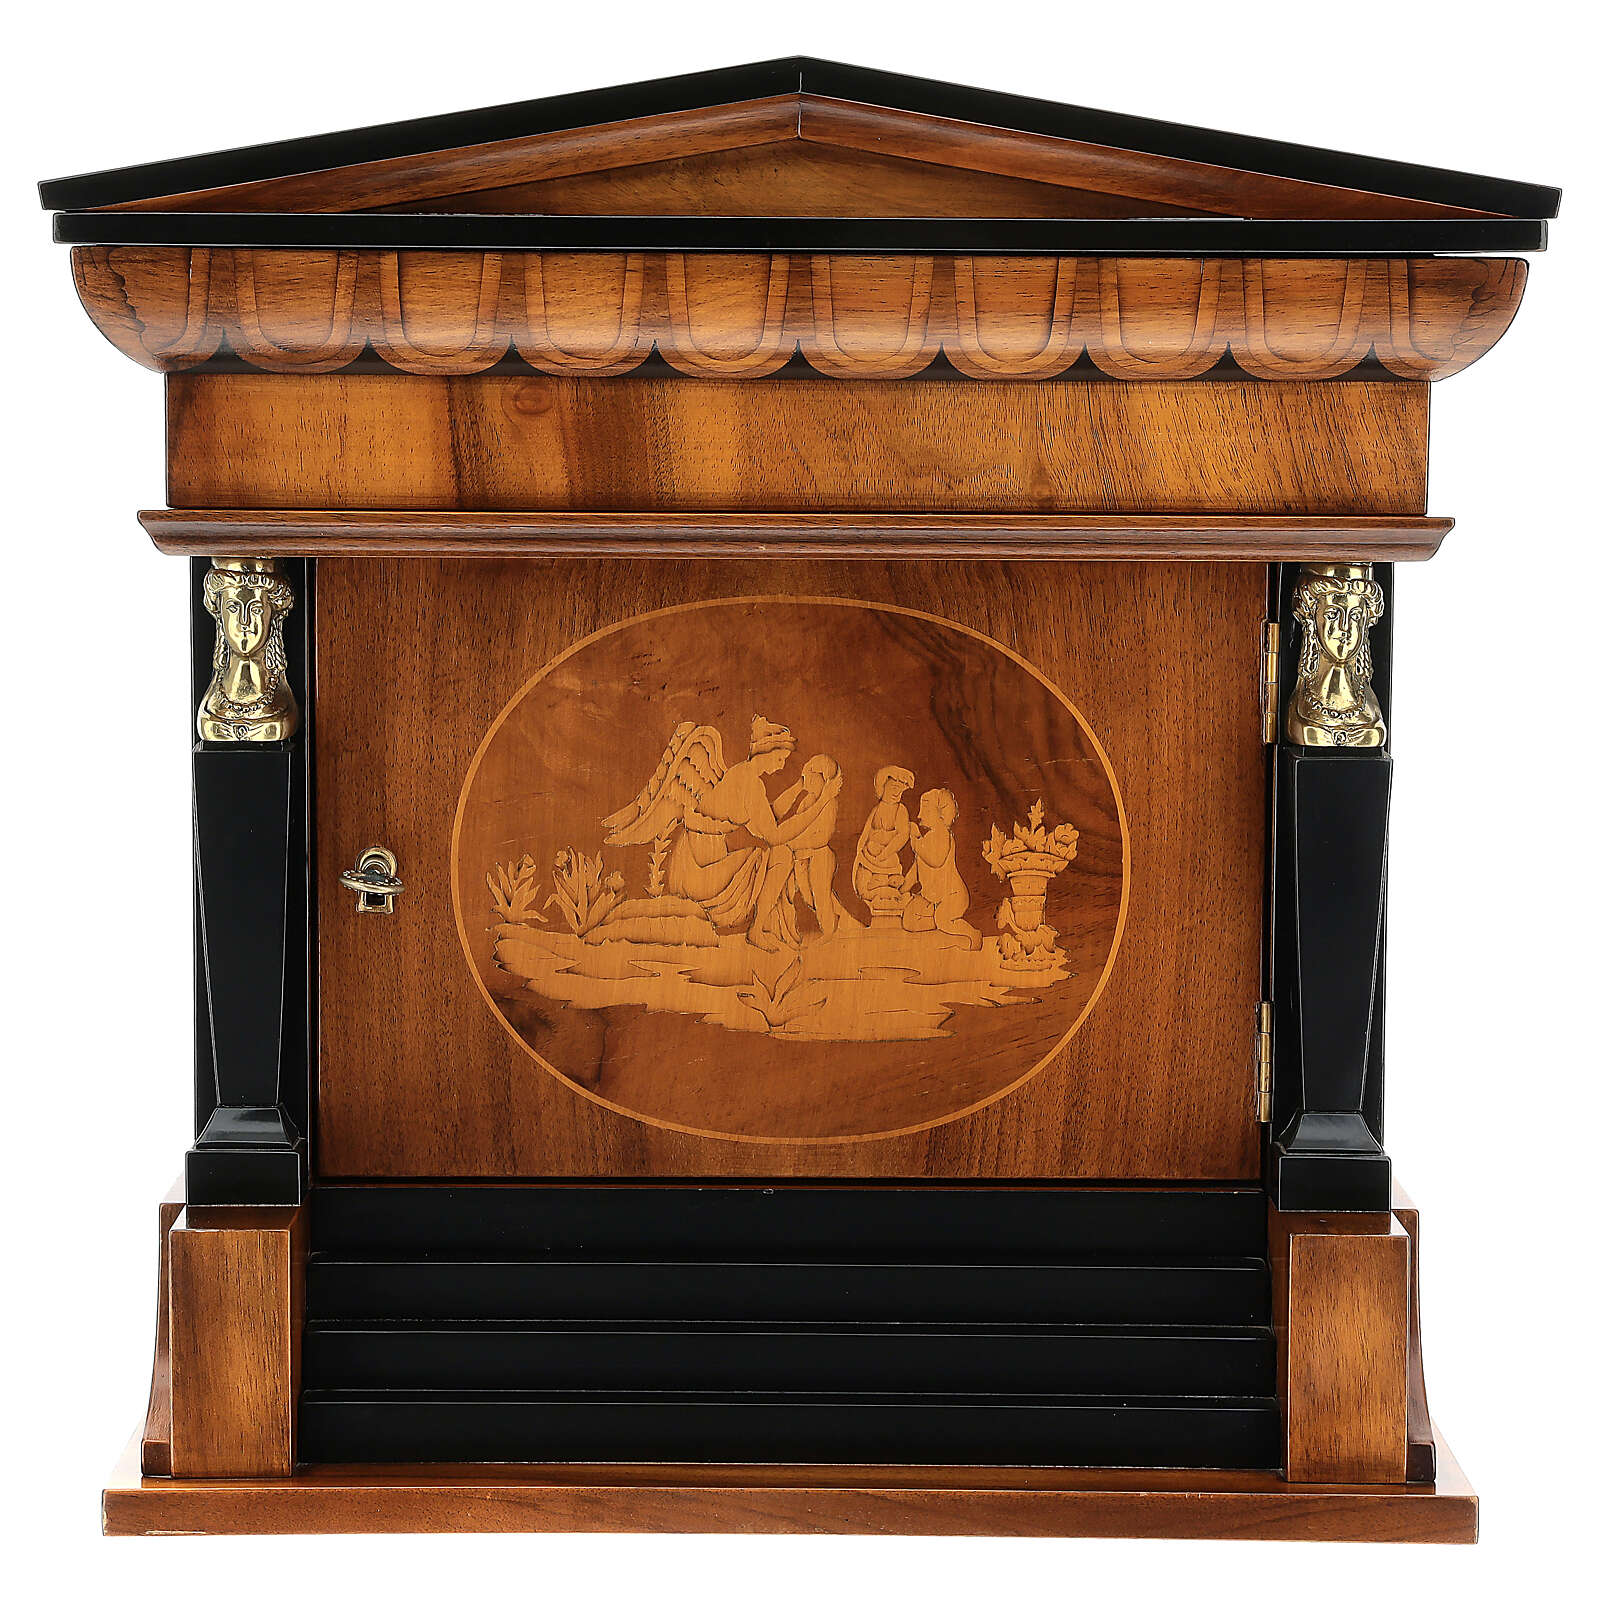 Temple funeral urn in wood and copper suitable for containing 2 urns 3